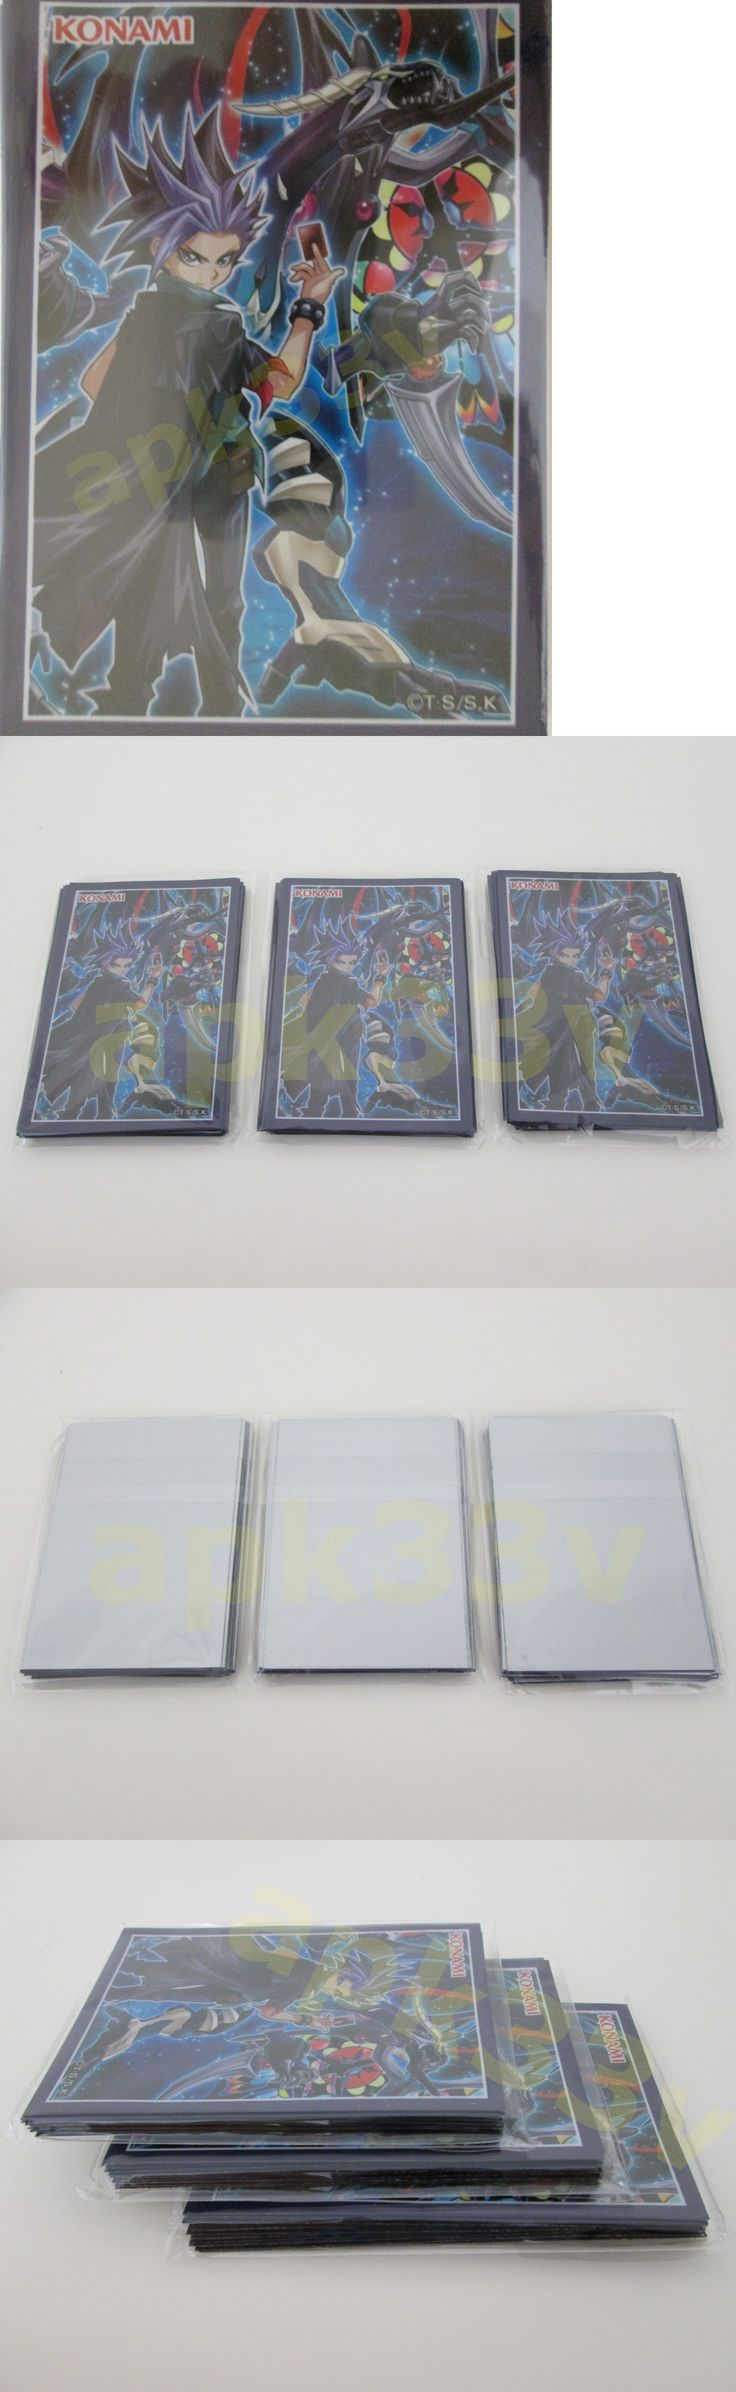 CCG Card Sleeves 183461: Yugioh Arc-V ? 60 Pcs ? Yuto Dark Requiem Xyz Dragon Sleeves Card Deck Protector -> BUY IT NOW ONLY: $59.2 on eBay!